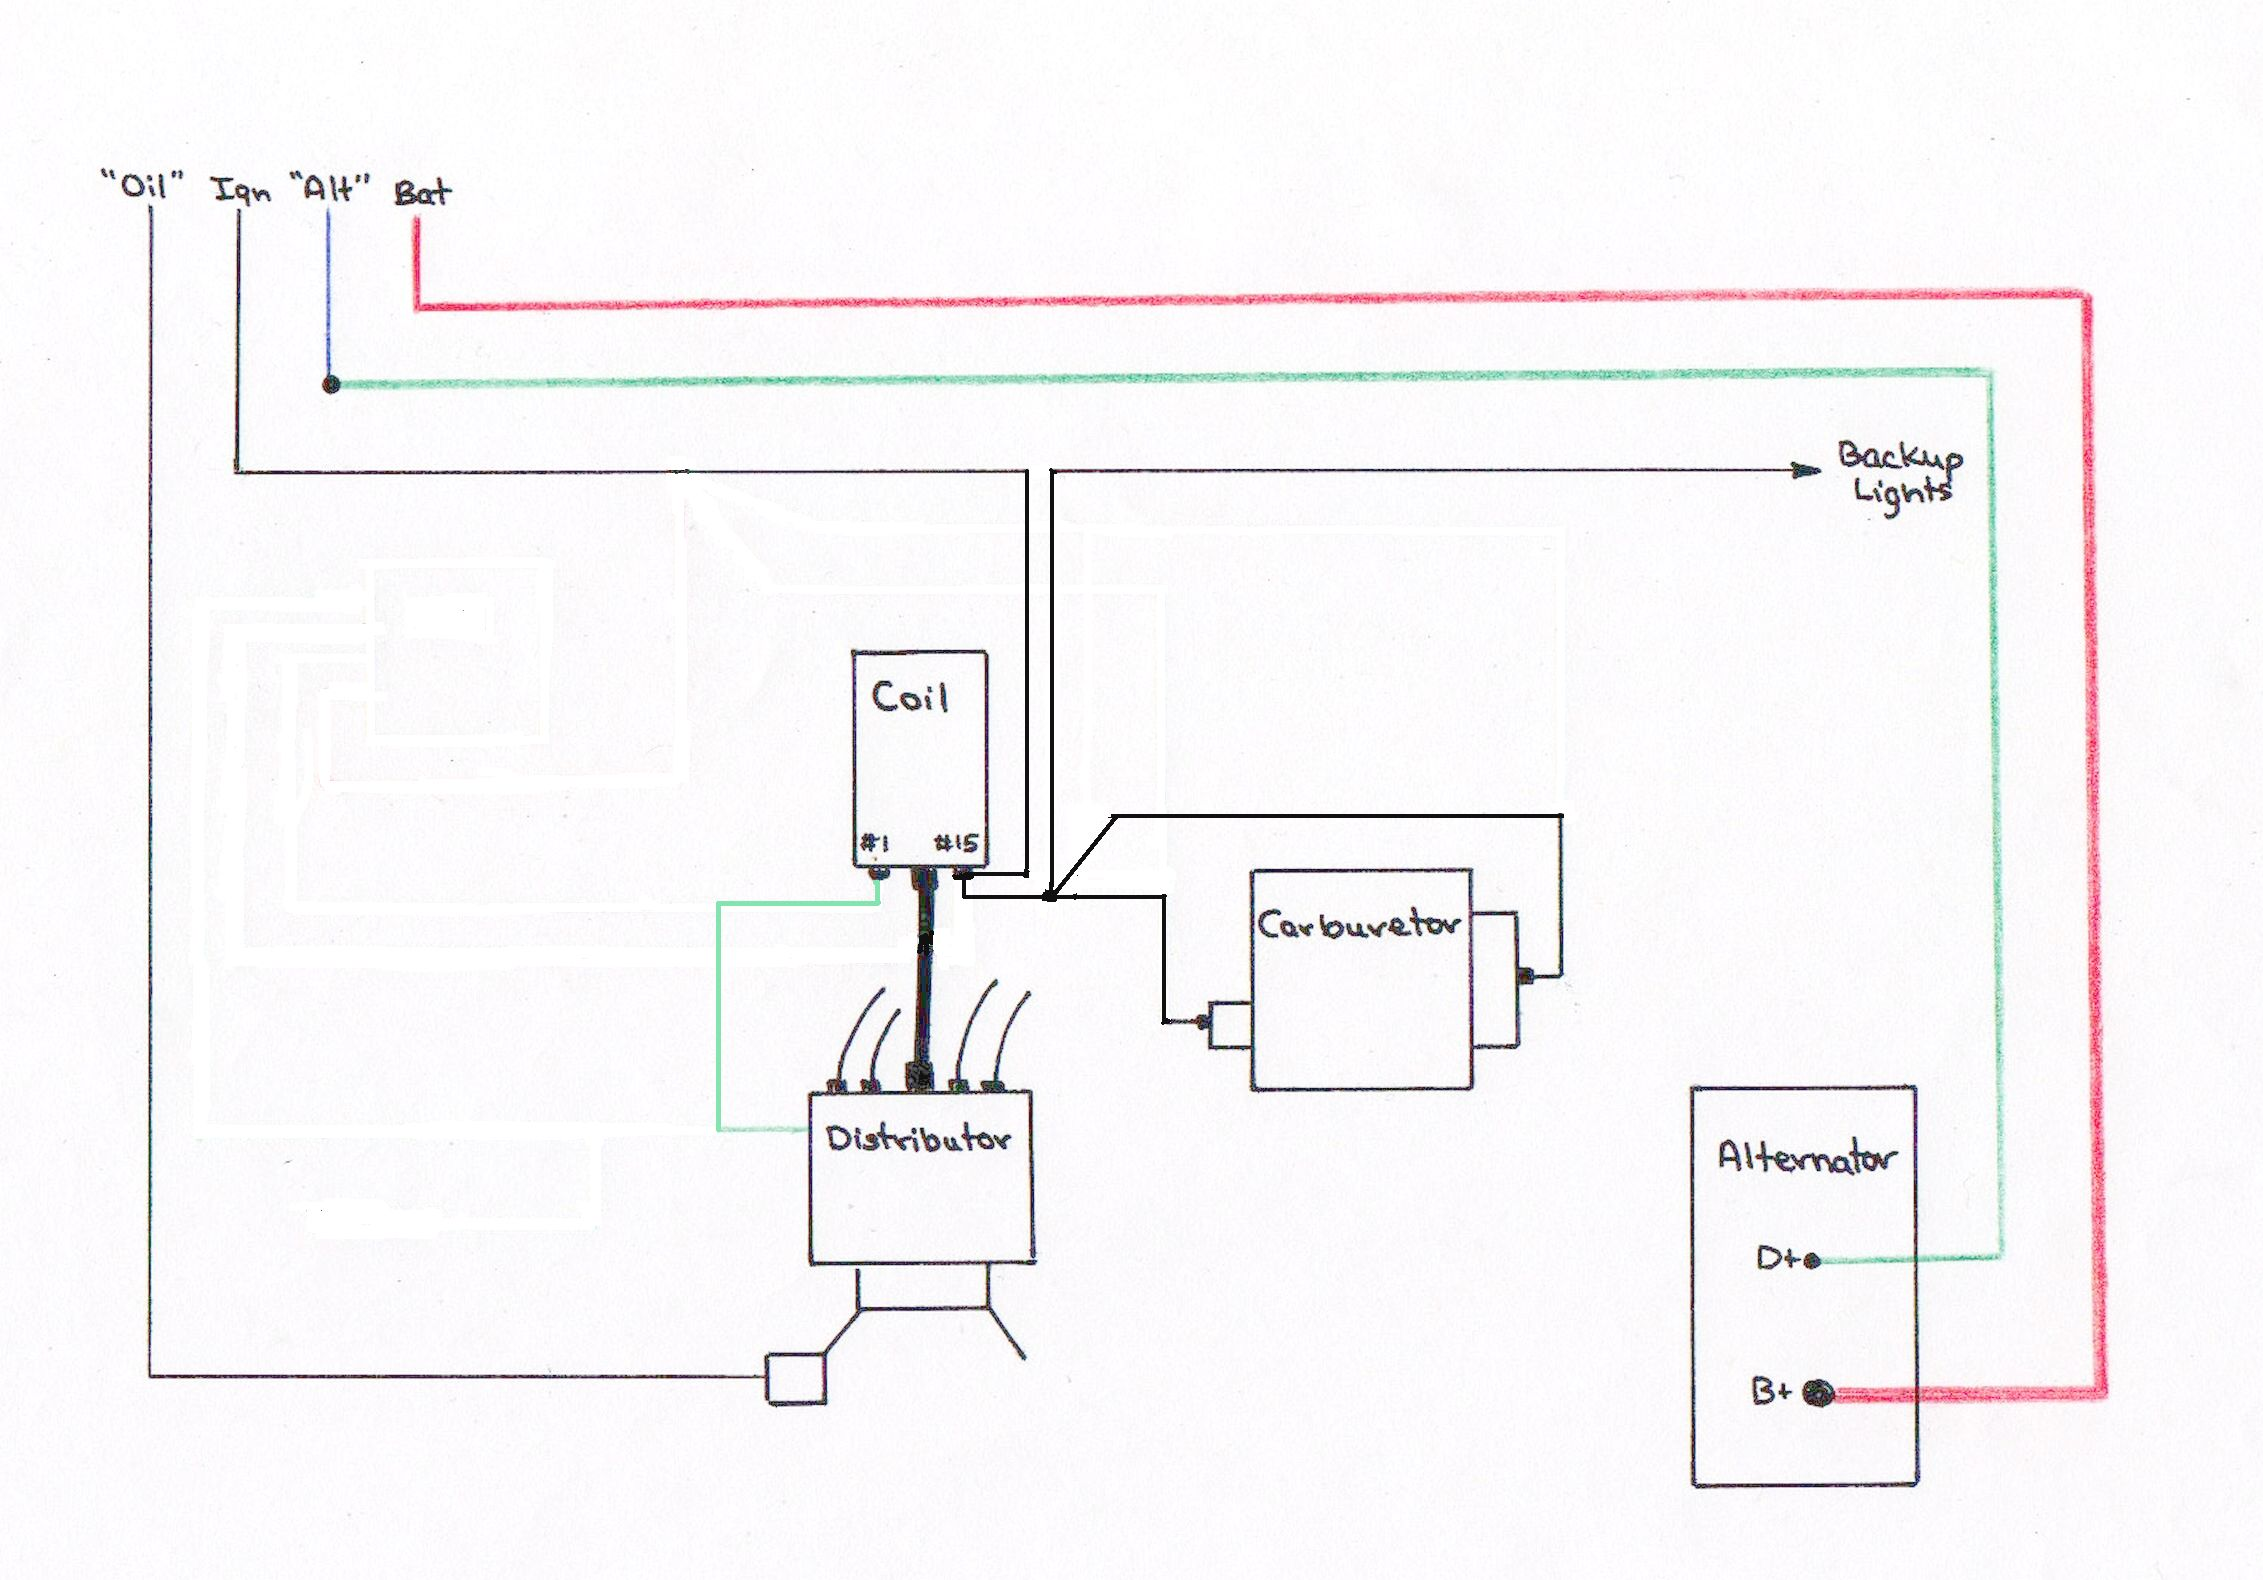 handdrawn_schematic alternator wiring vw ignition switch wiring diagram at fashall.co